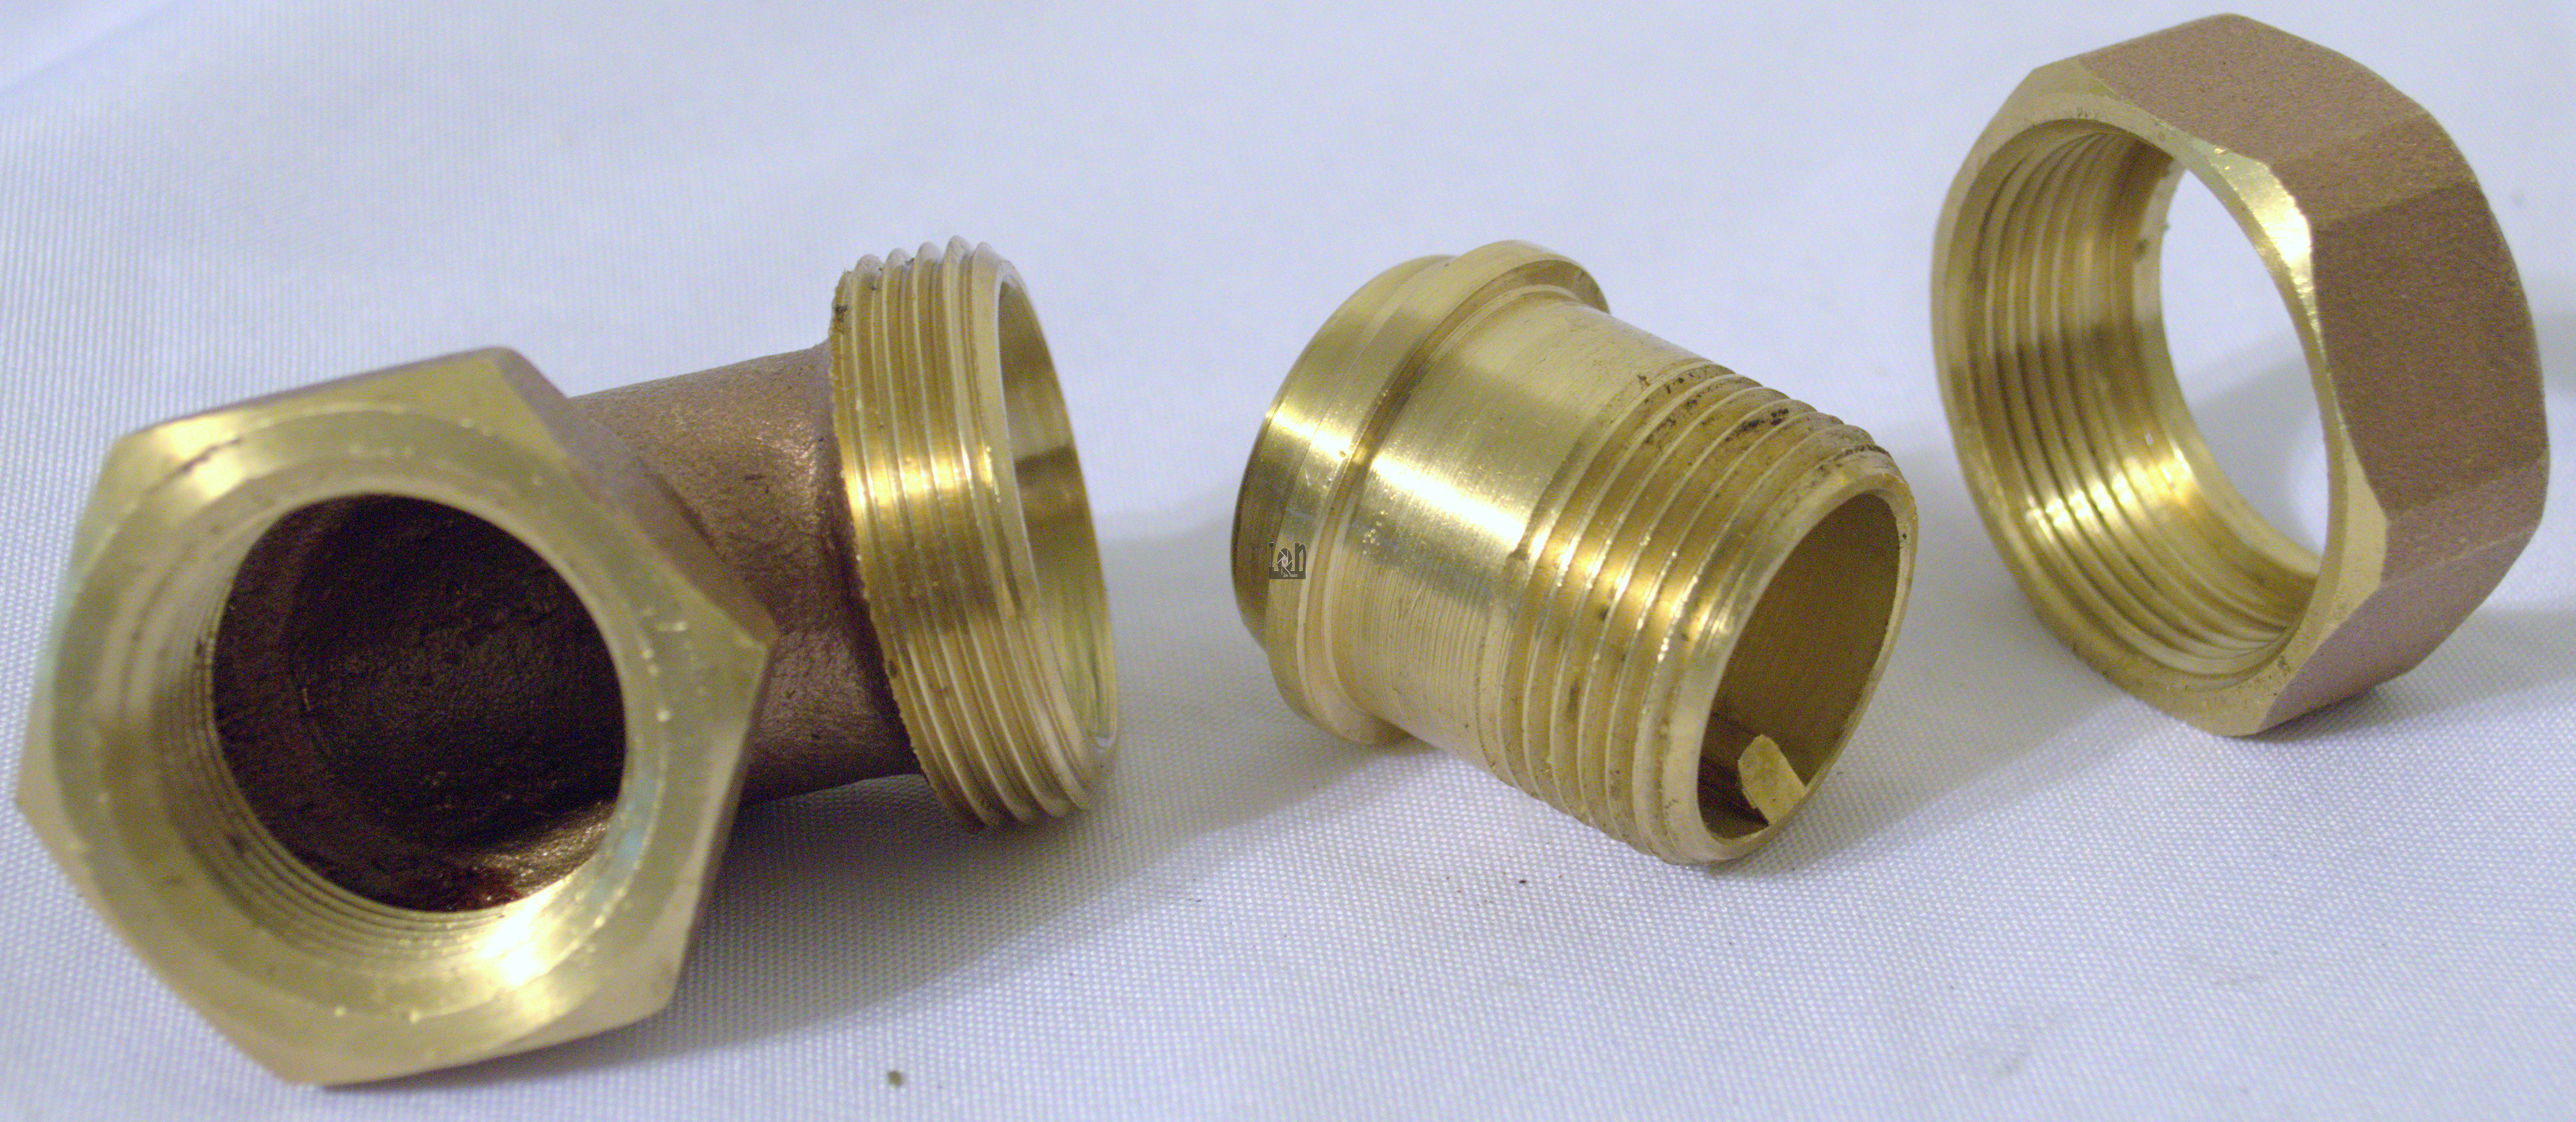 1Inch NPT Brass Fitting Elbow 90d Male to Female Pipe Adapter